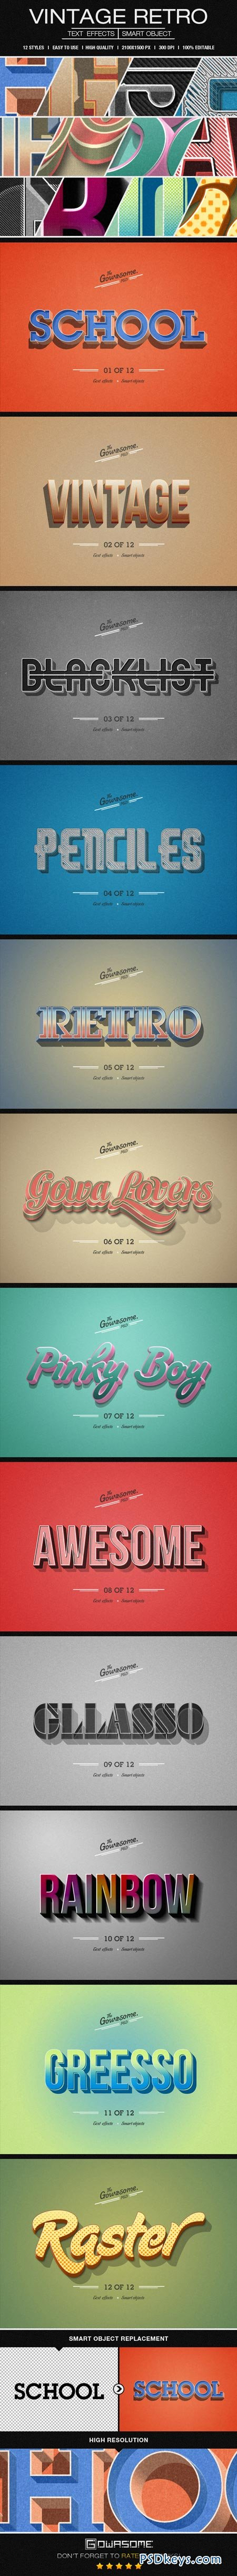 Retro Vintage Text Effects 8809603